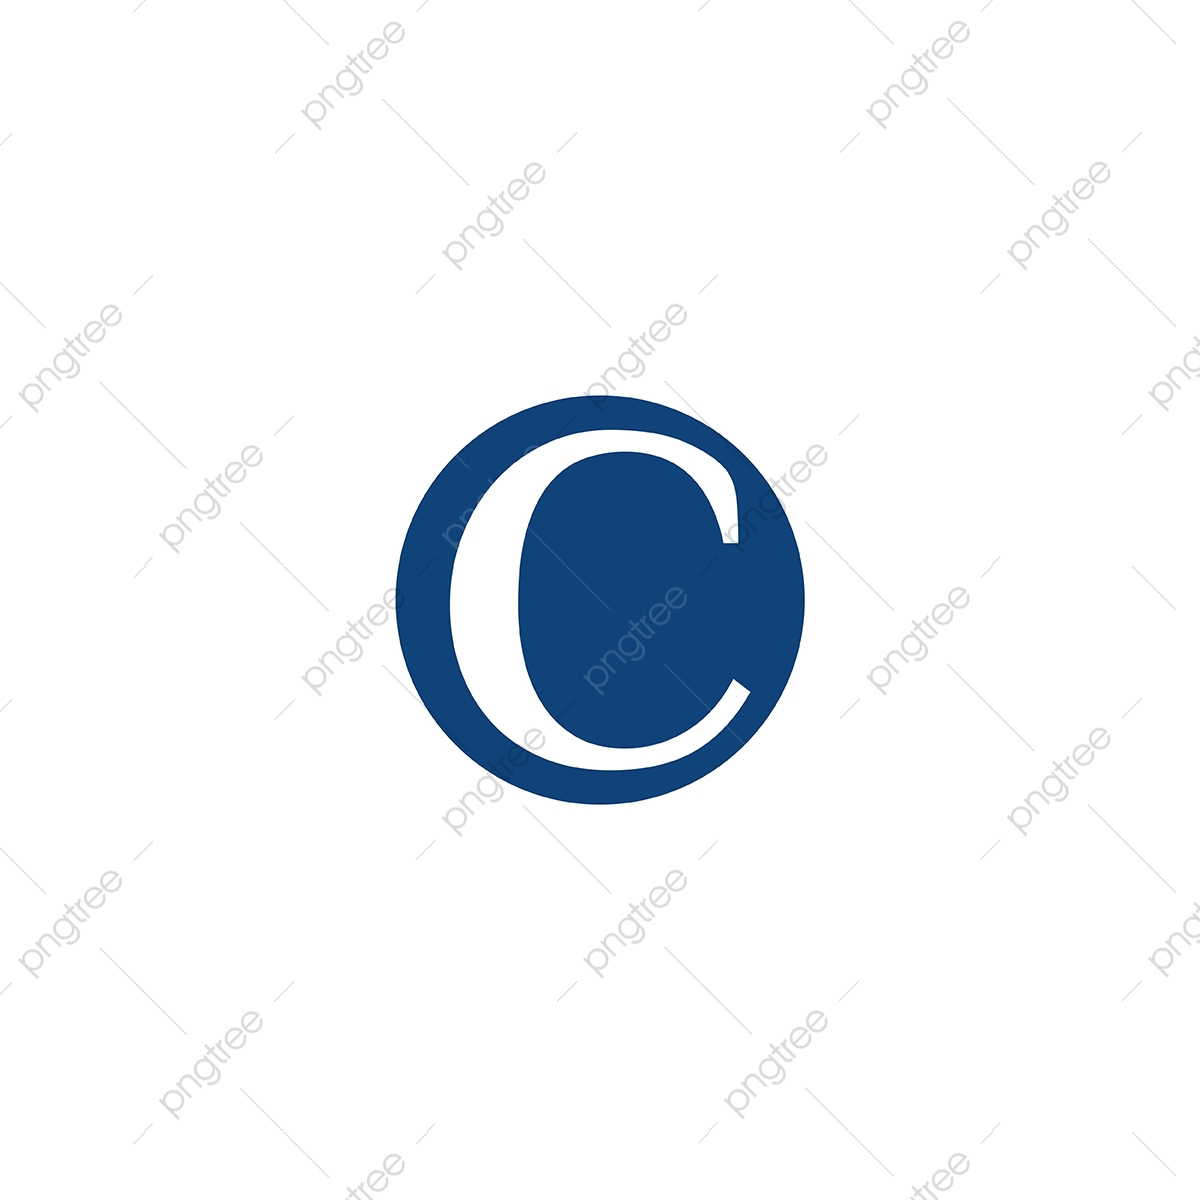 Letter C Negative Space Logo Designs Inspiration Isolated On Whi